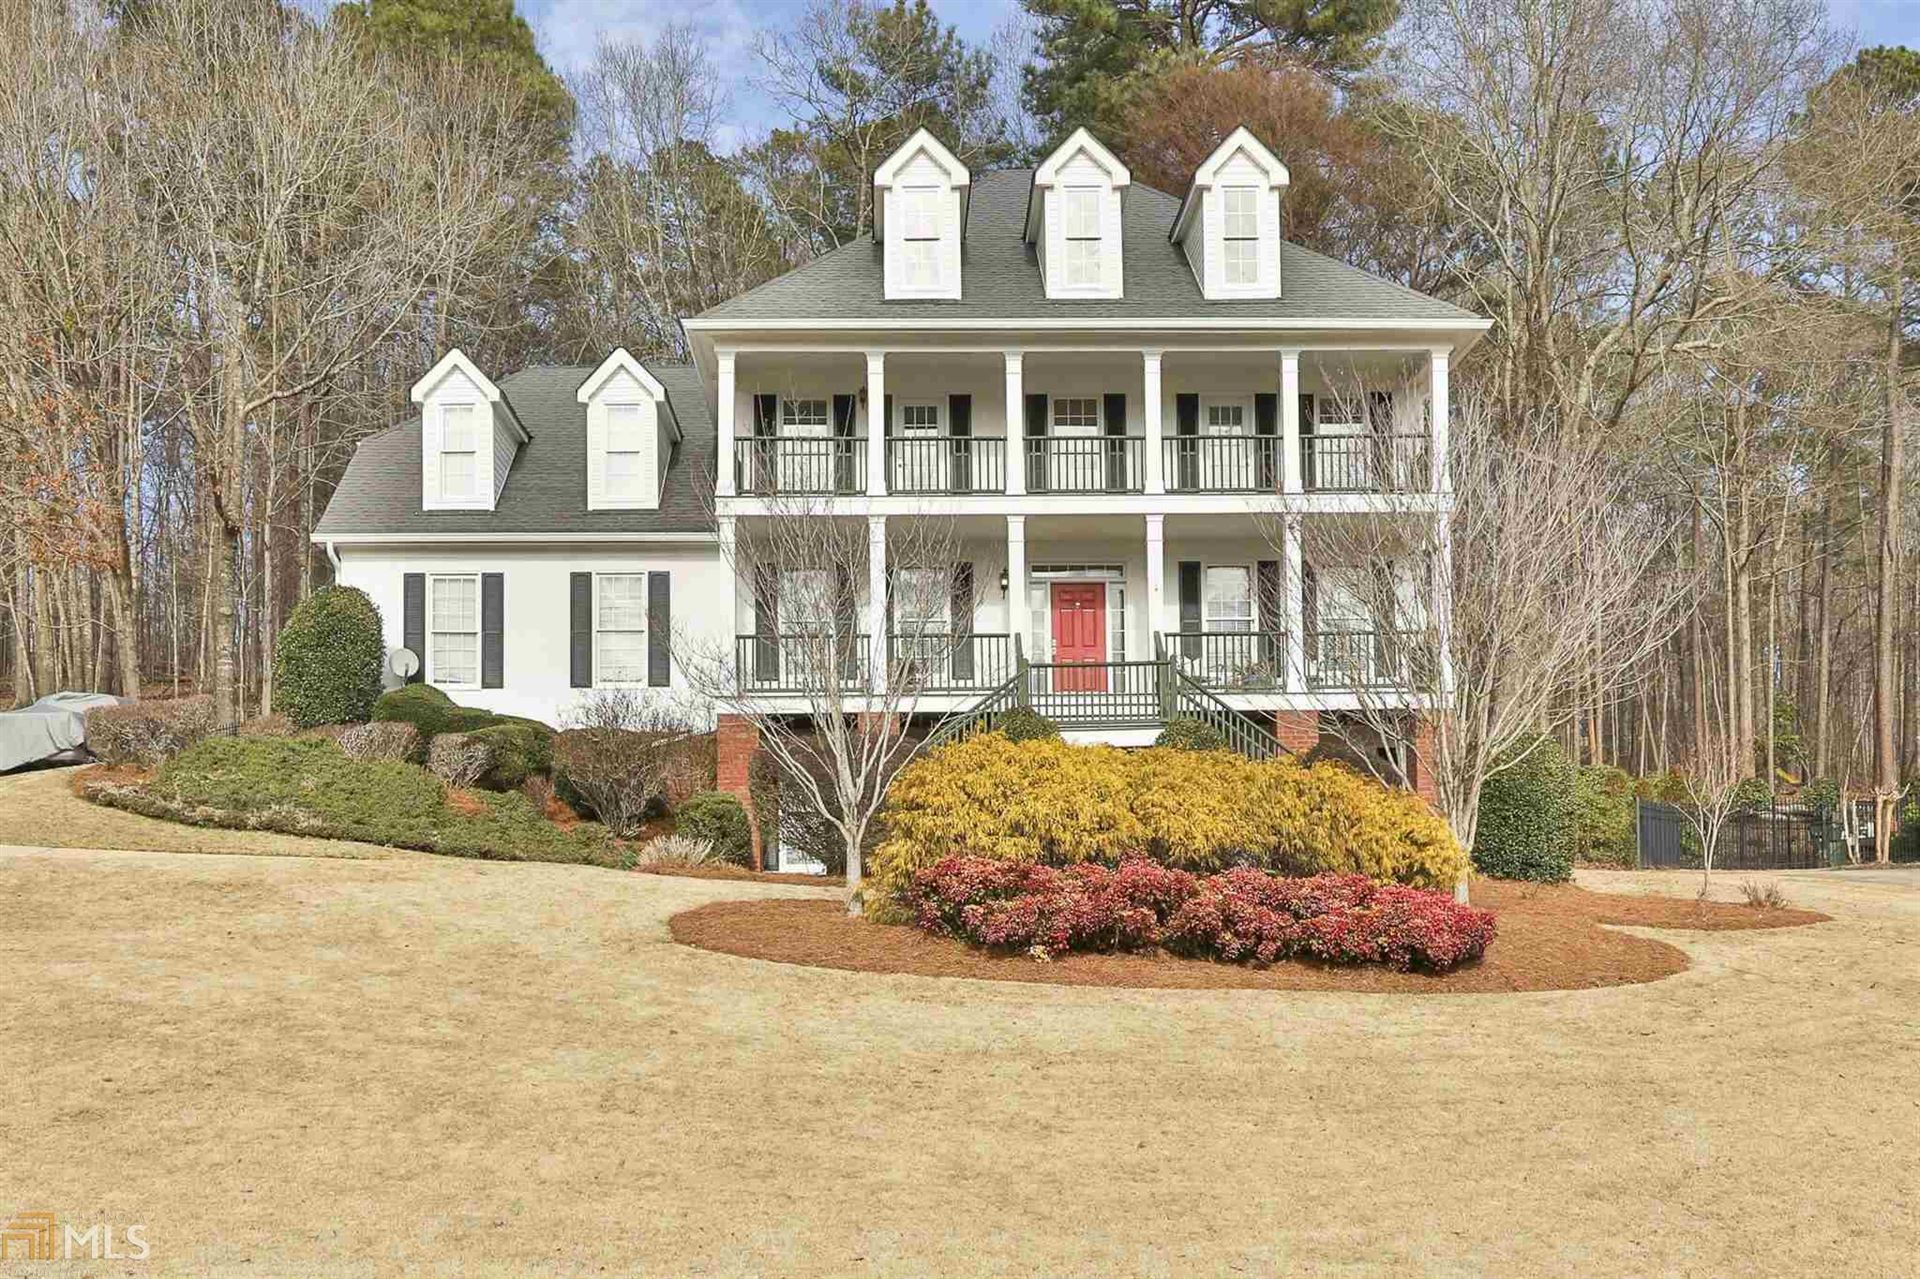 122 Interlochen Dr, Peachtree City, GA 30269 - #: 8930419